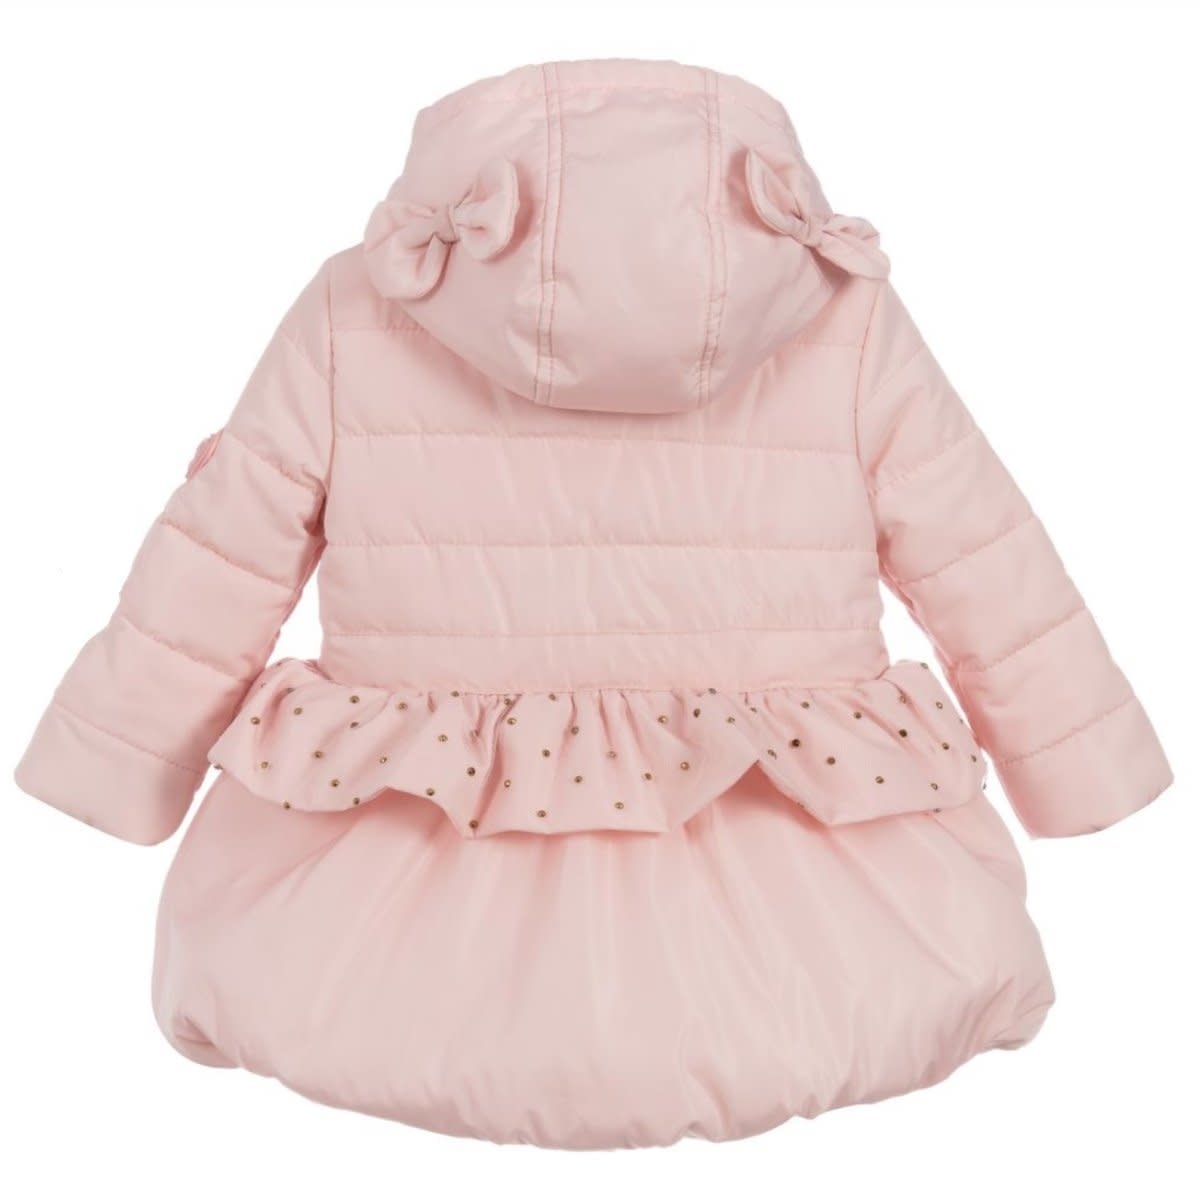 Lechic LeChic C007-7213 Pink Coat with Bow & Net